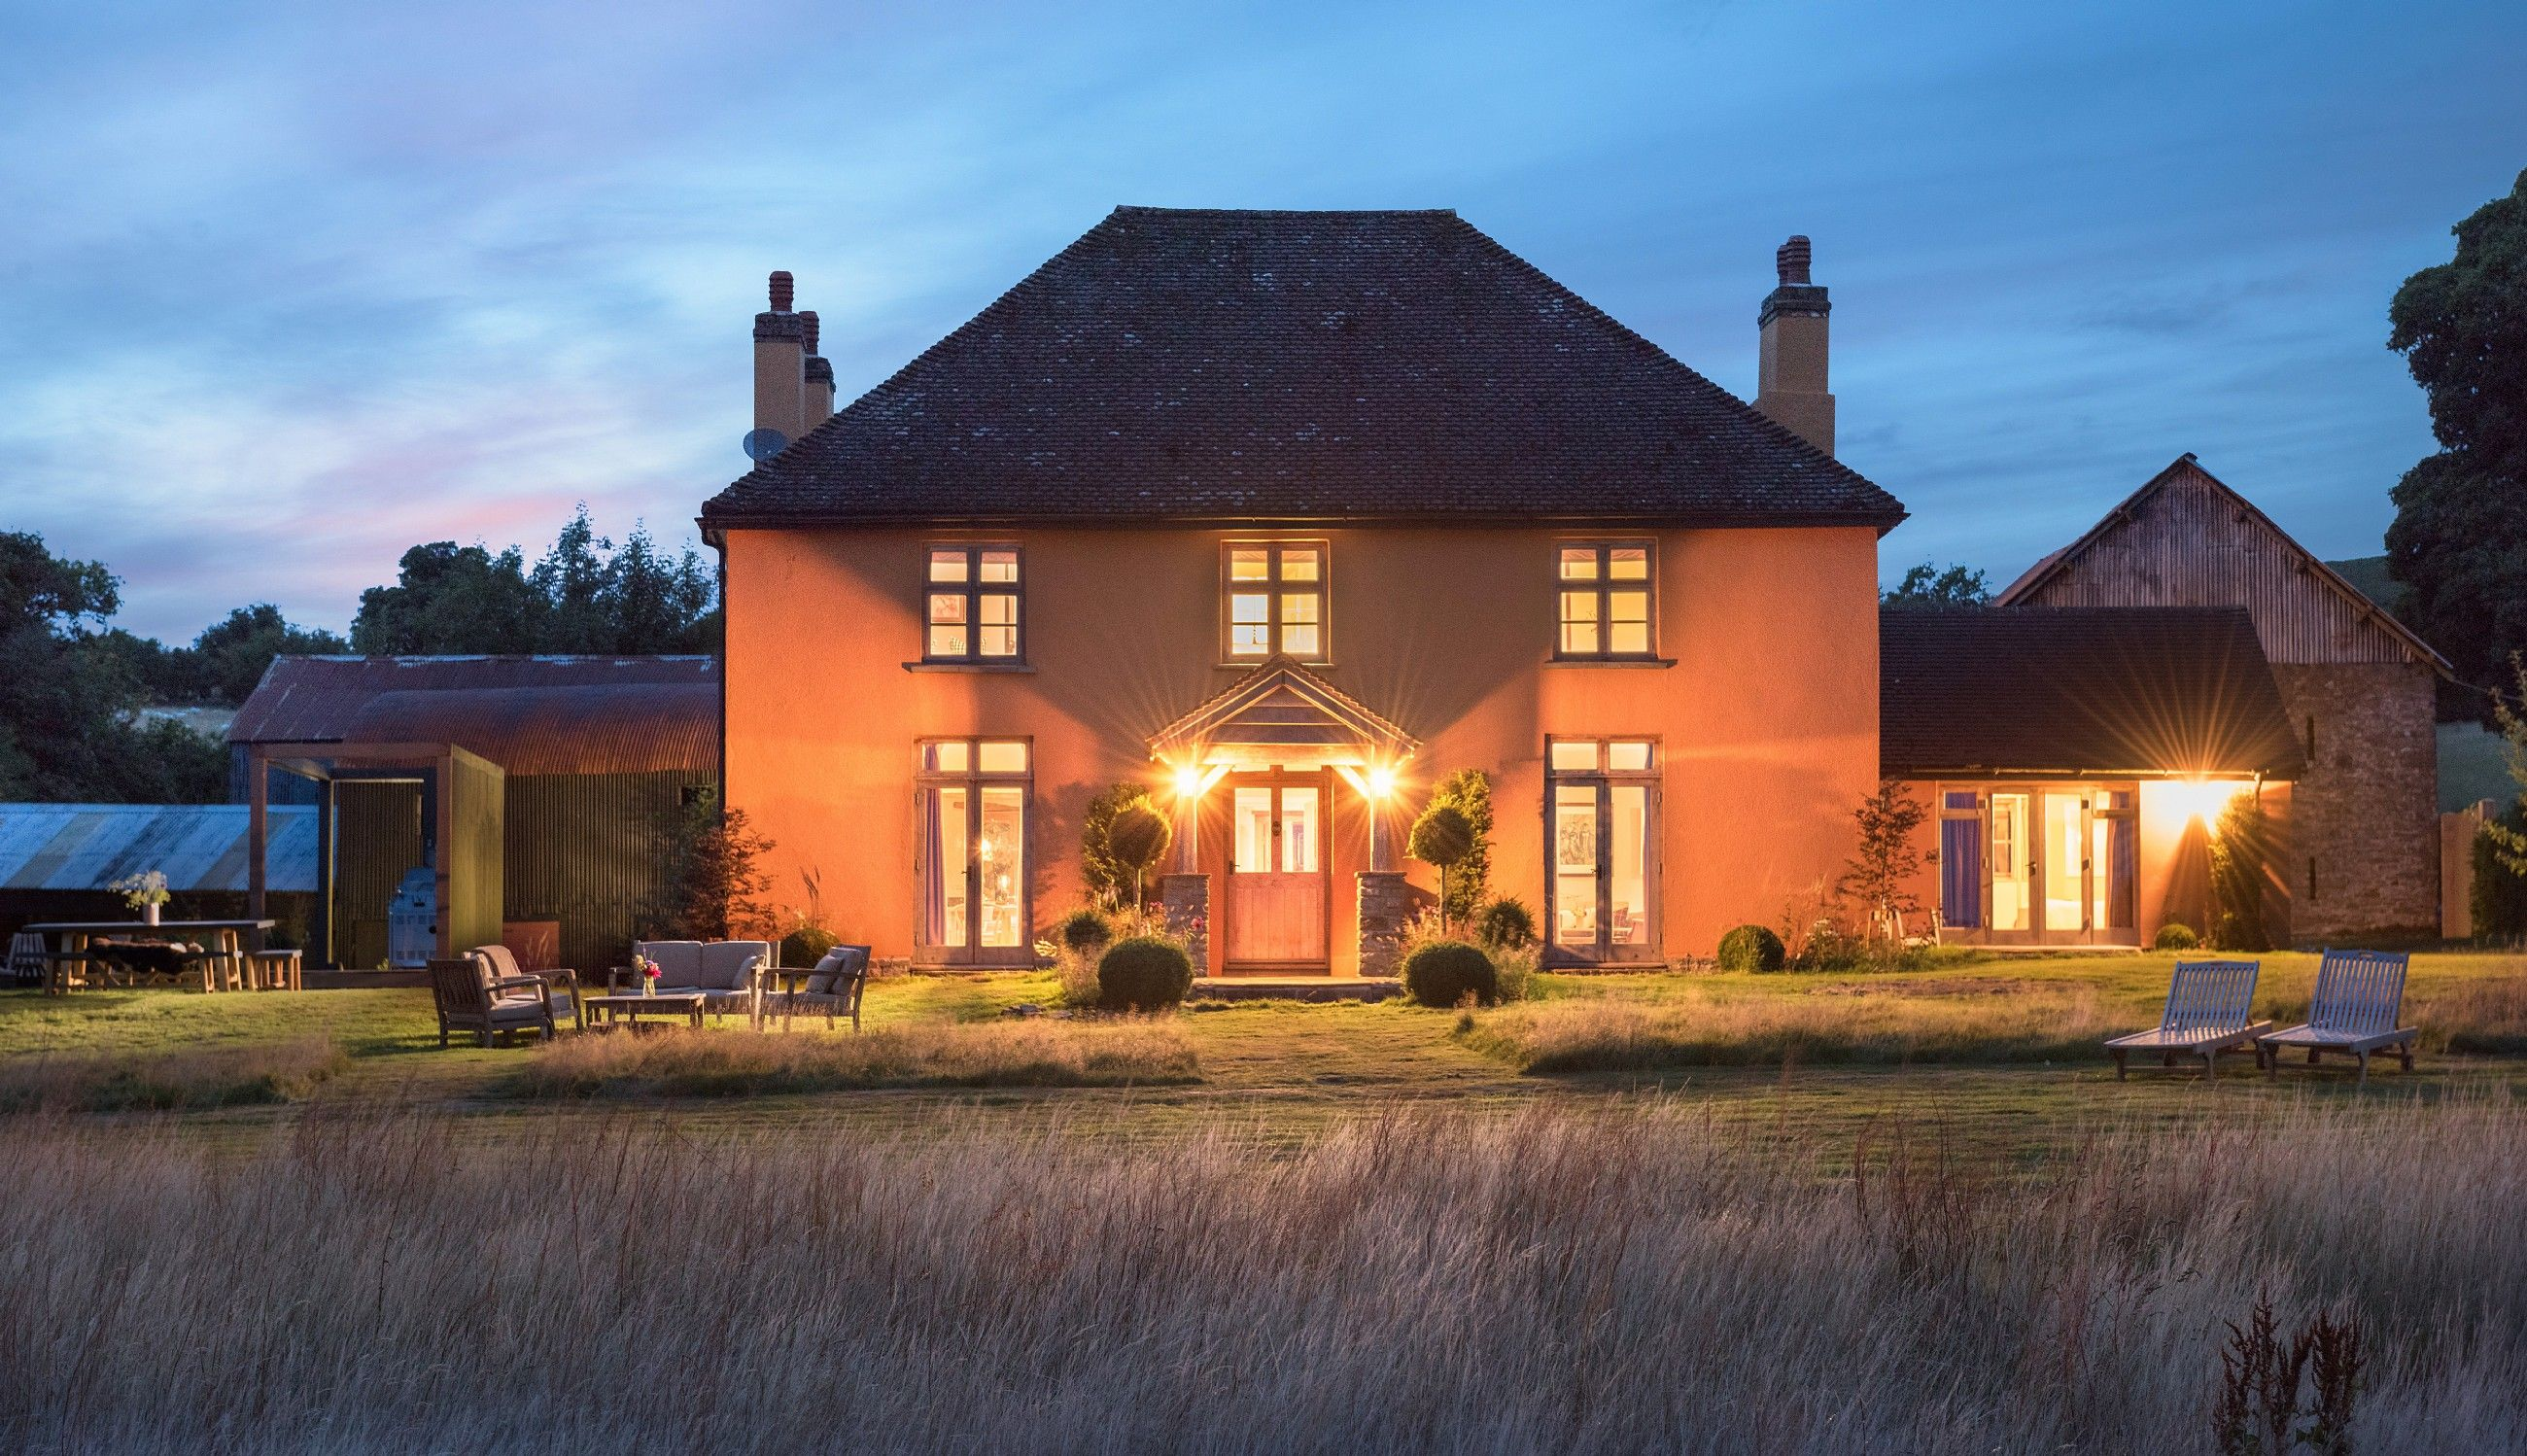 Offering Country Cottage Style Luxury Self Catering Accommodation